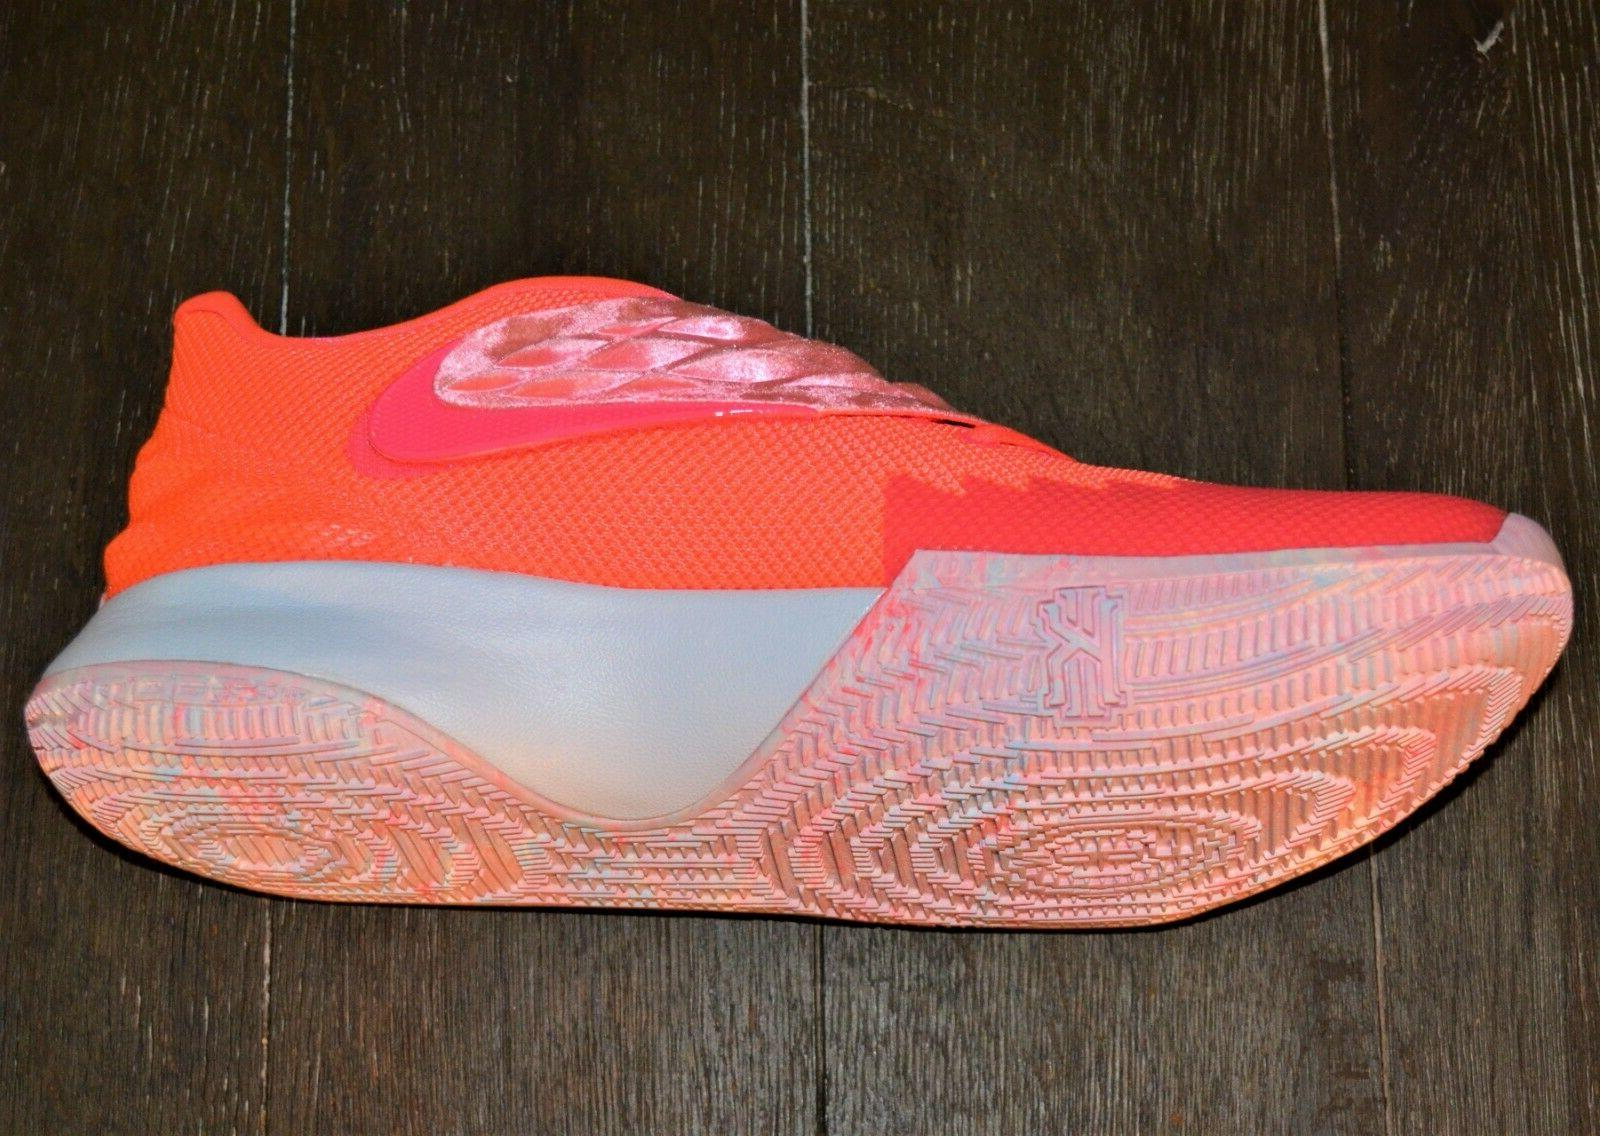 """NEW KYRIE """" MEN'S SHOES 8-13 BASKETBALL IRVING PINK"""